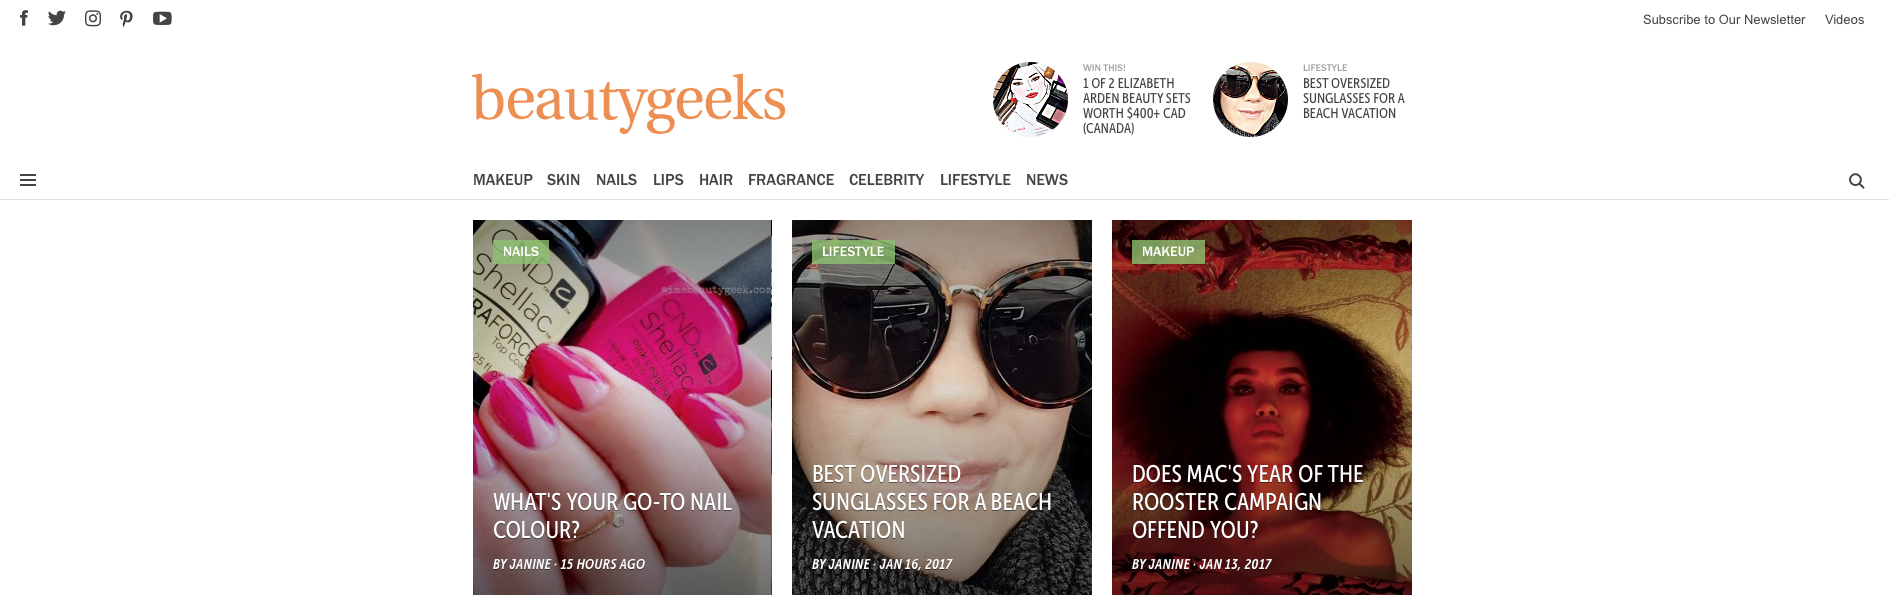 Beautygeeks, one of our fave Canadian beauty blogs